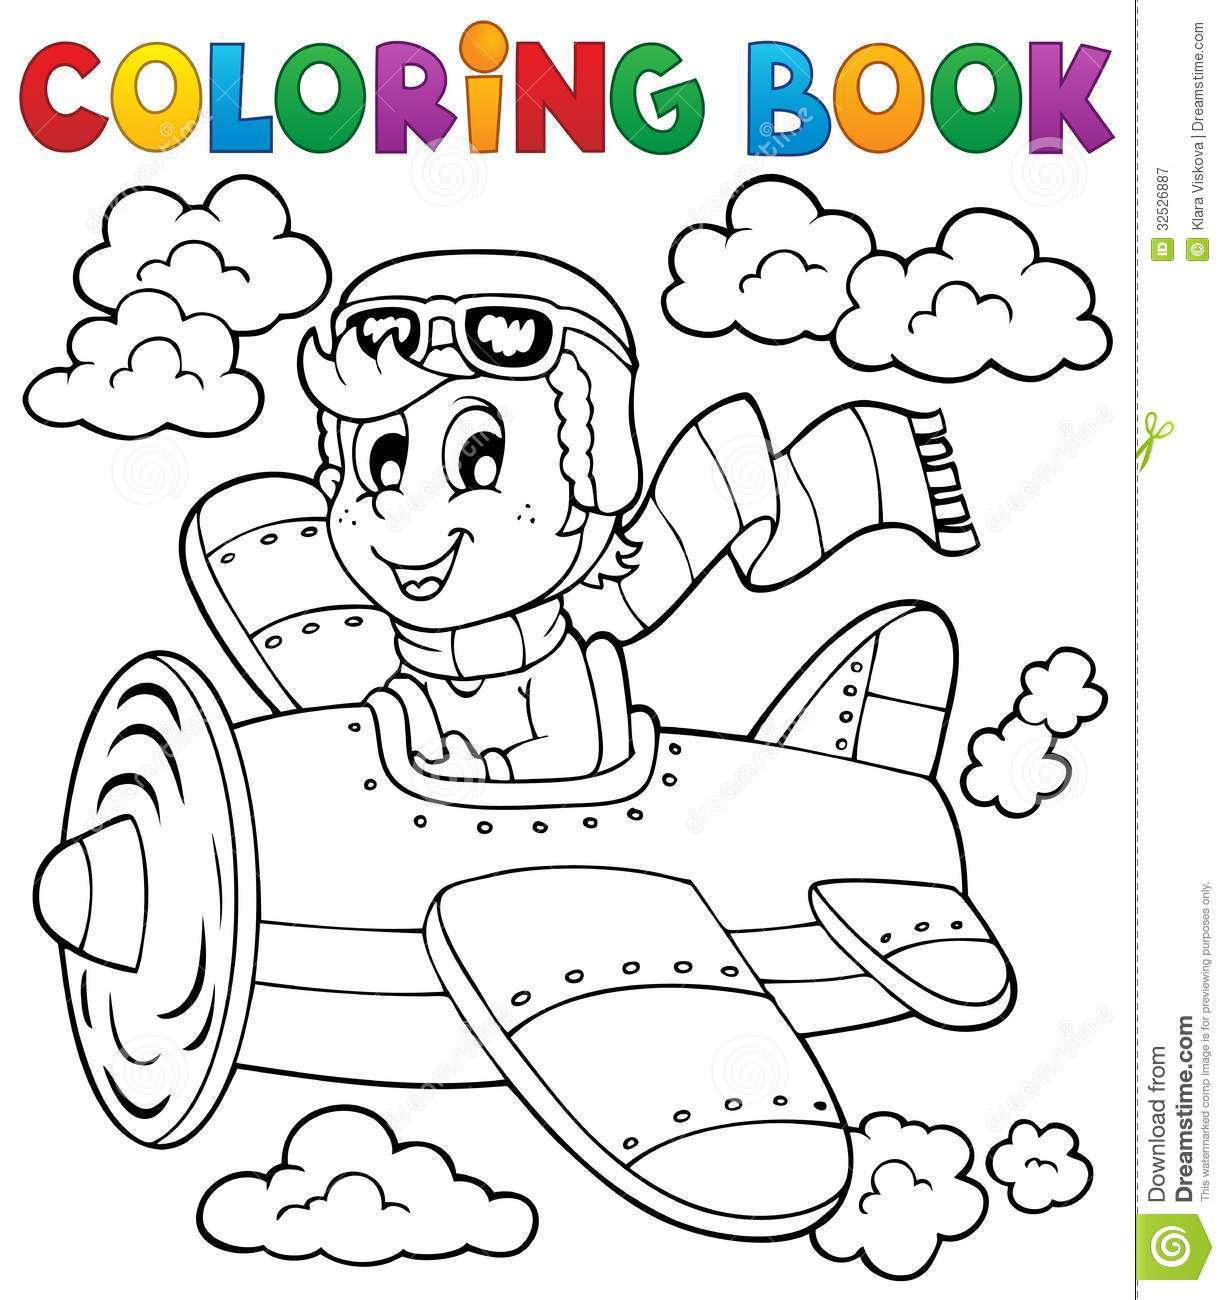 coloring book airplane theme 1 royalty free stock photo - Free Download Colouring Book